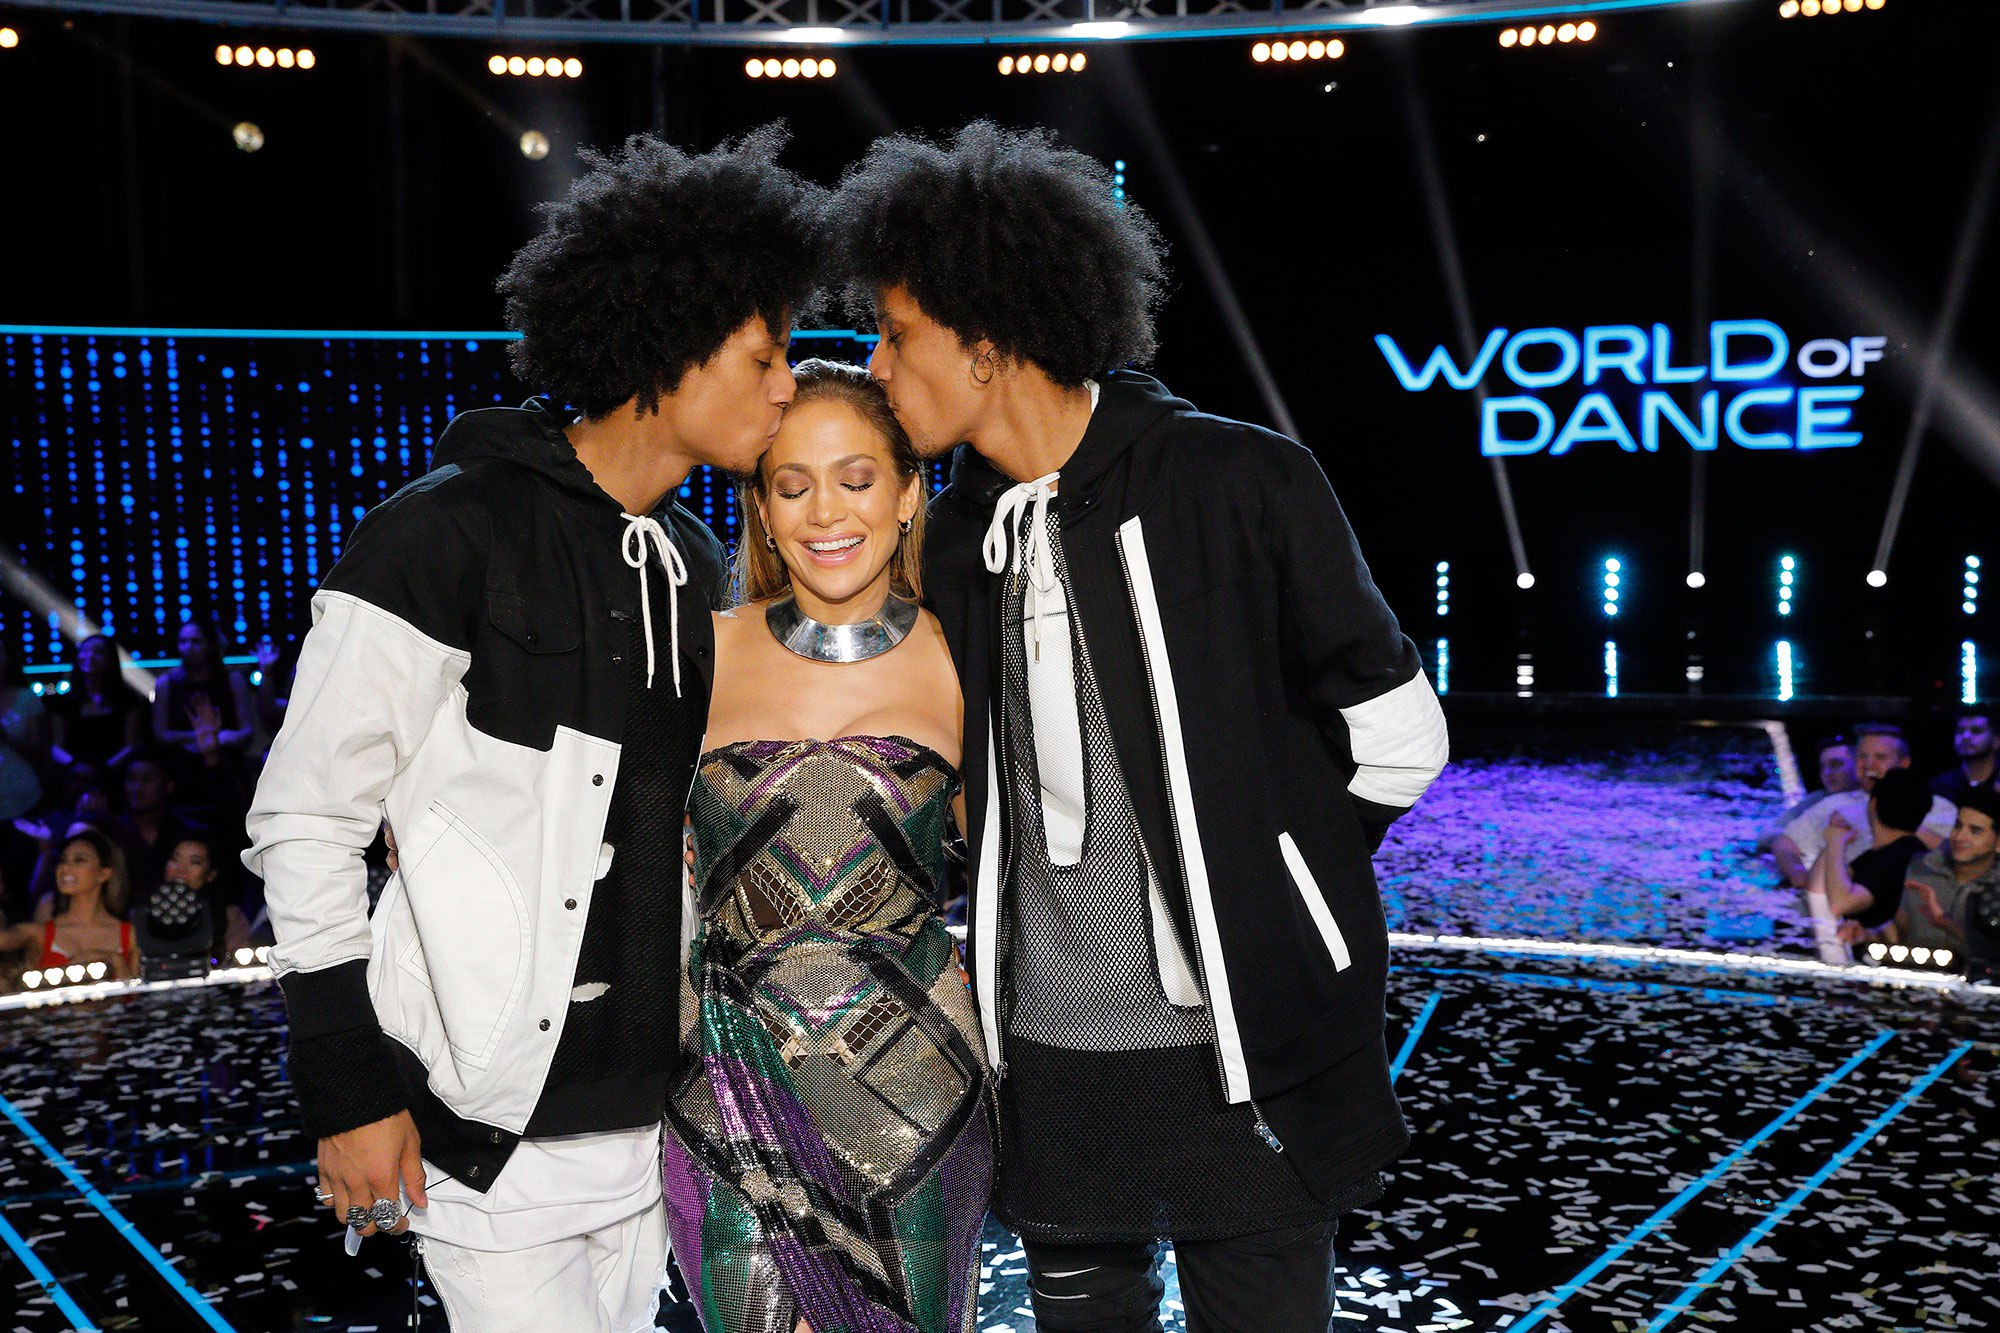 Winner Of World Of Dance and One Million Dollars- Les Twins